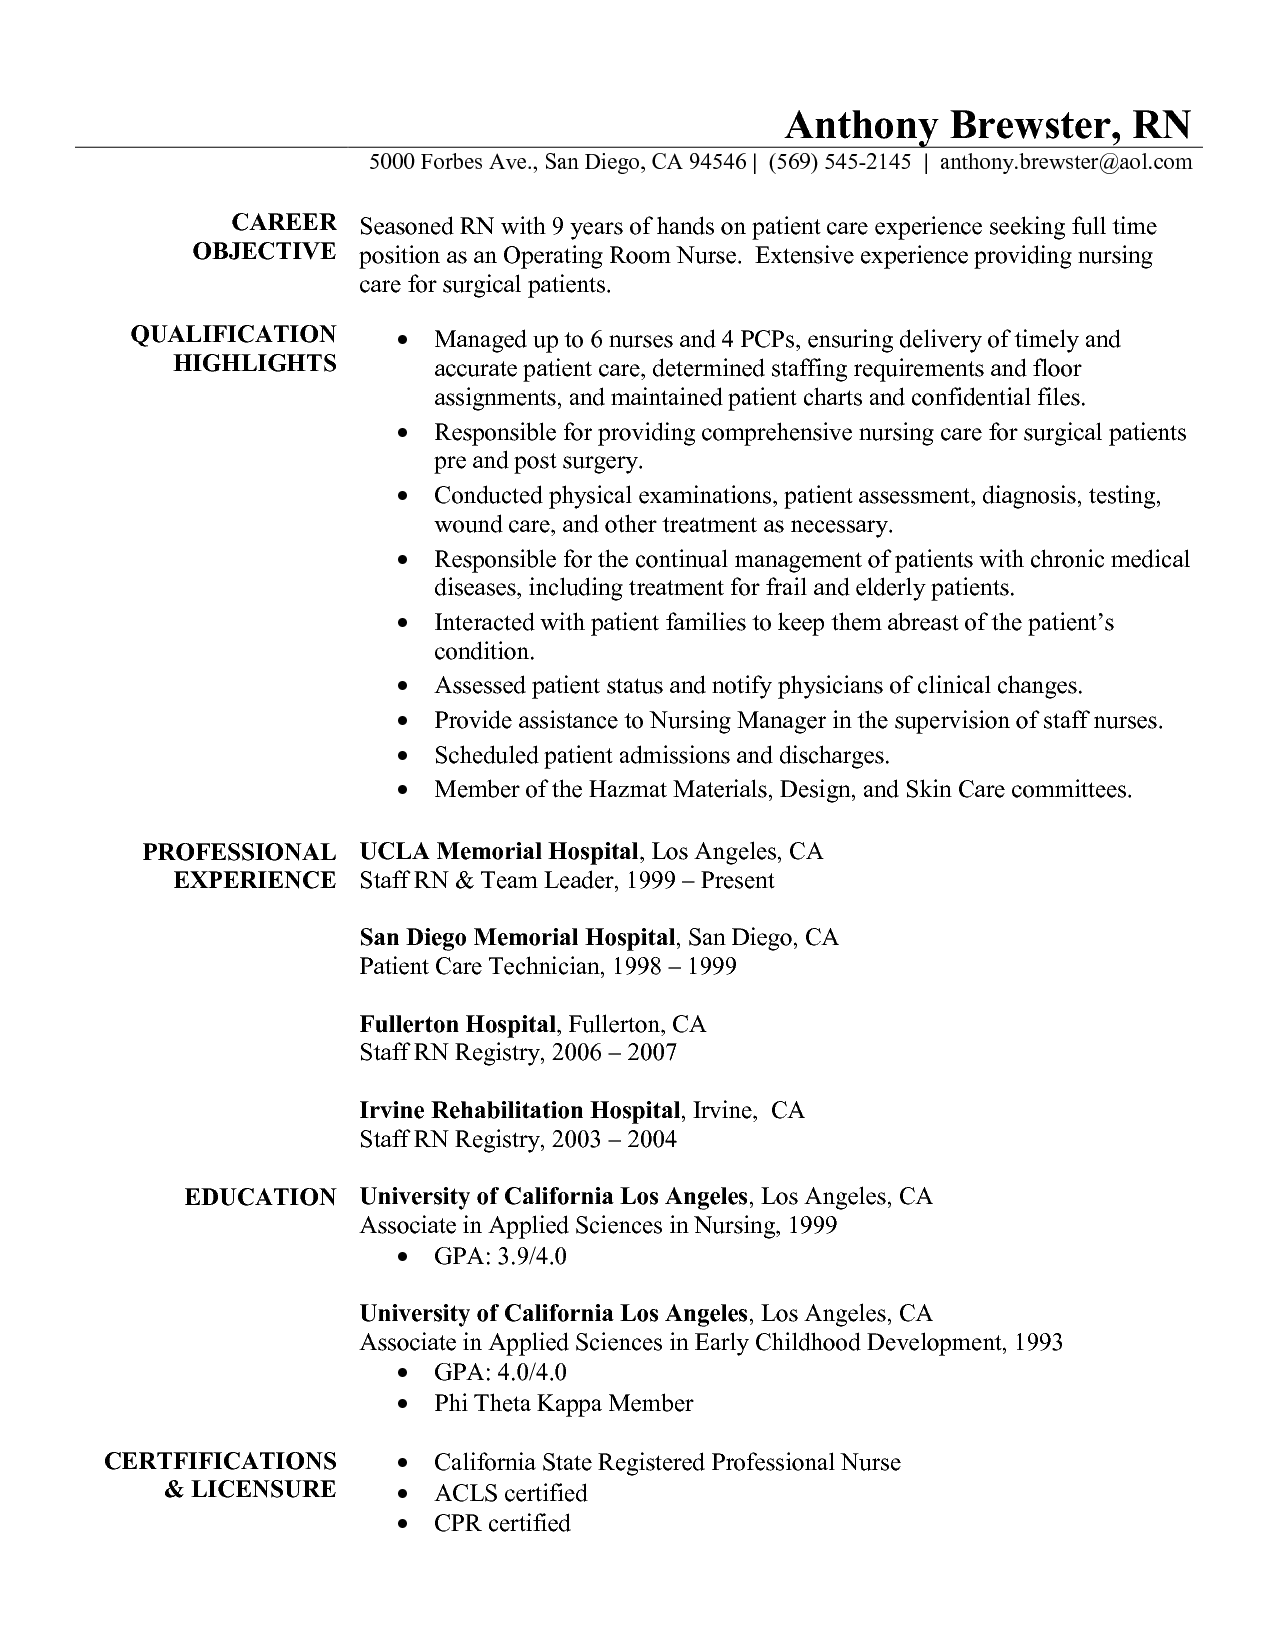 Rn Resume Templates Curriculum Vitae Template Nurse  Google Search  Wade Resume